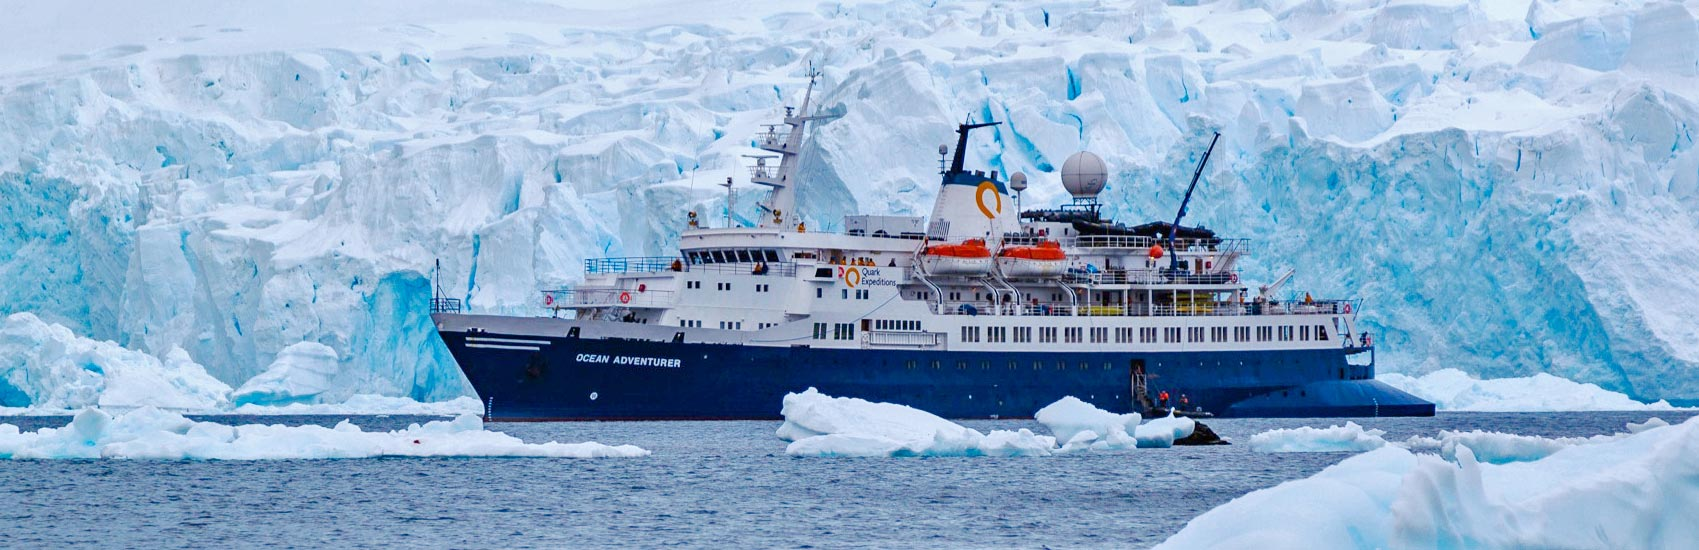 Arctic 2023 Early Booking Savings with Quark Expeditions 5